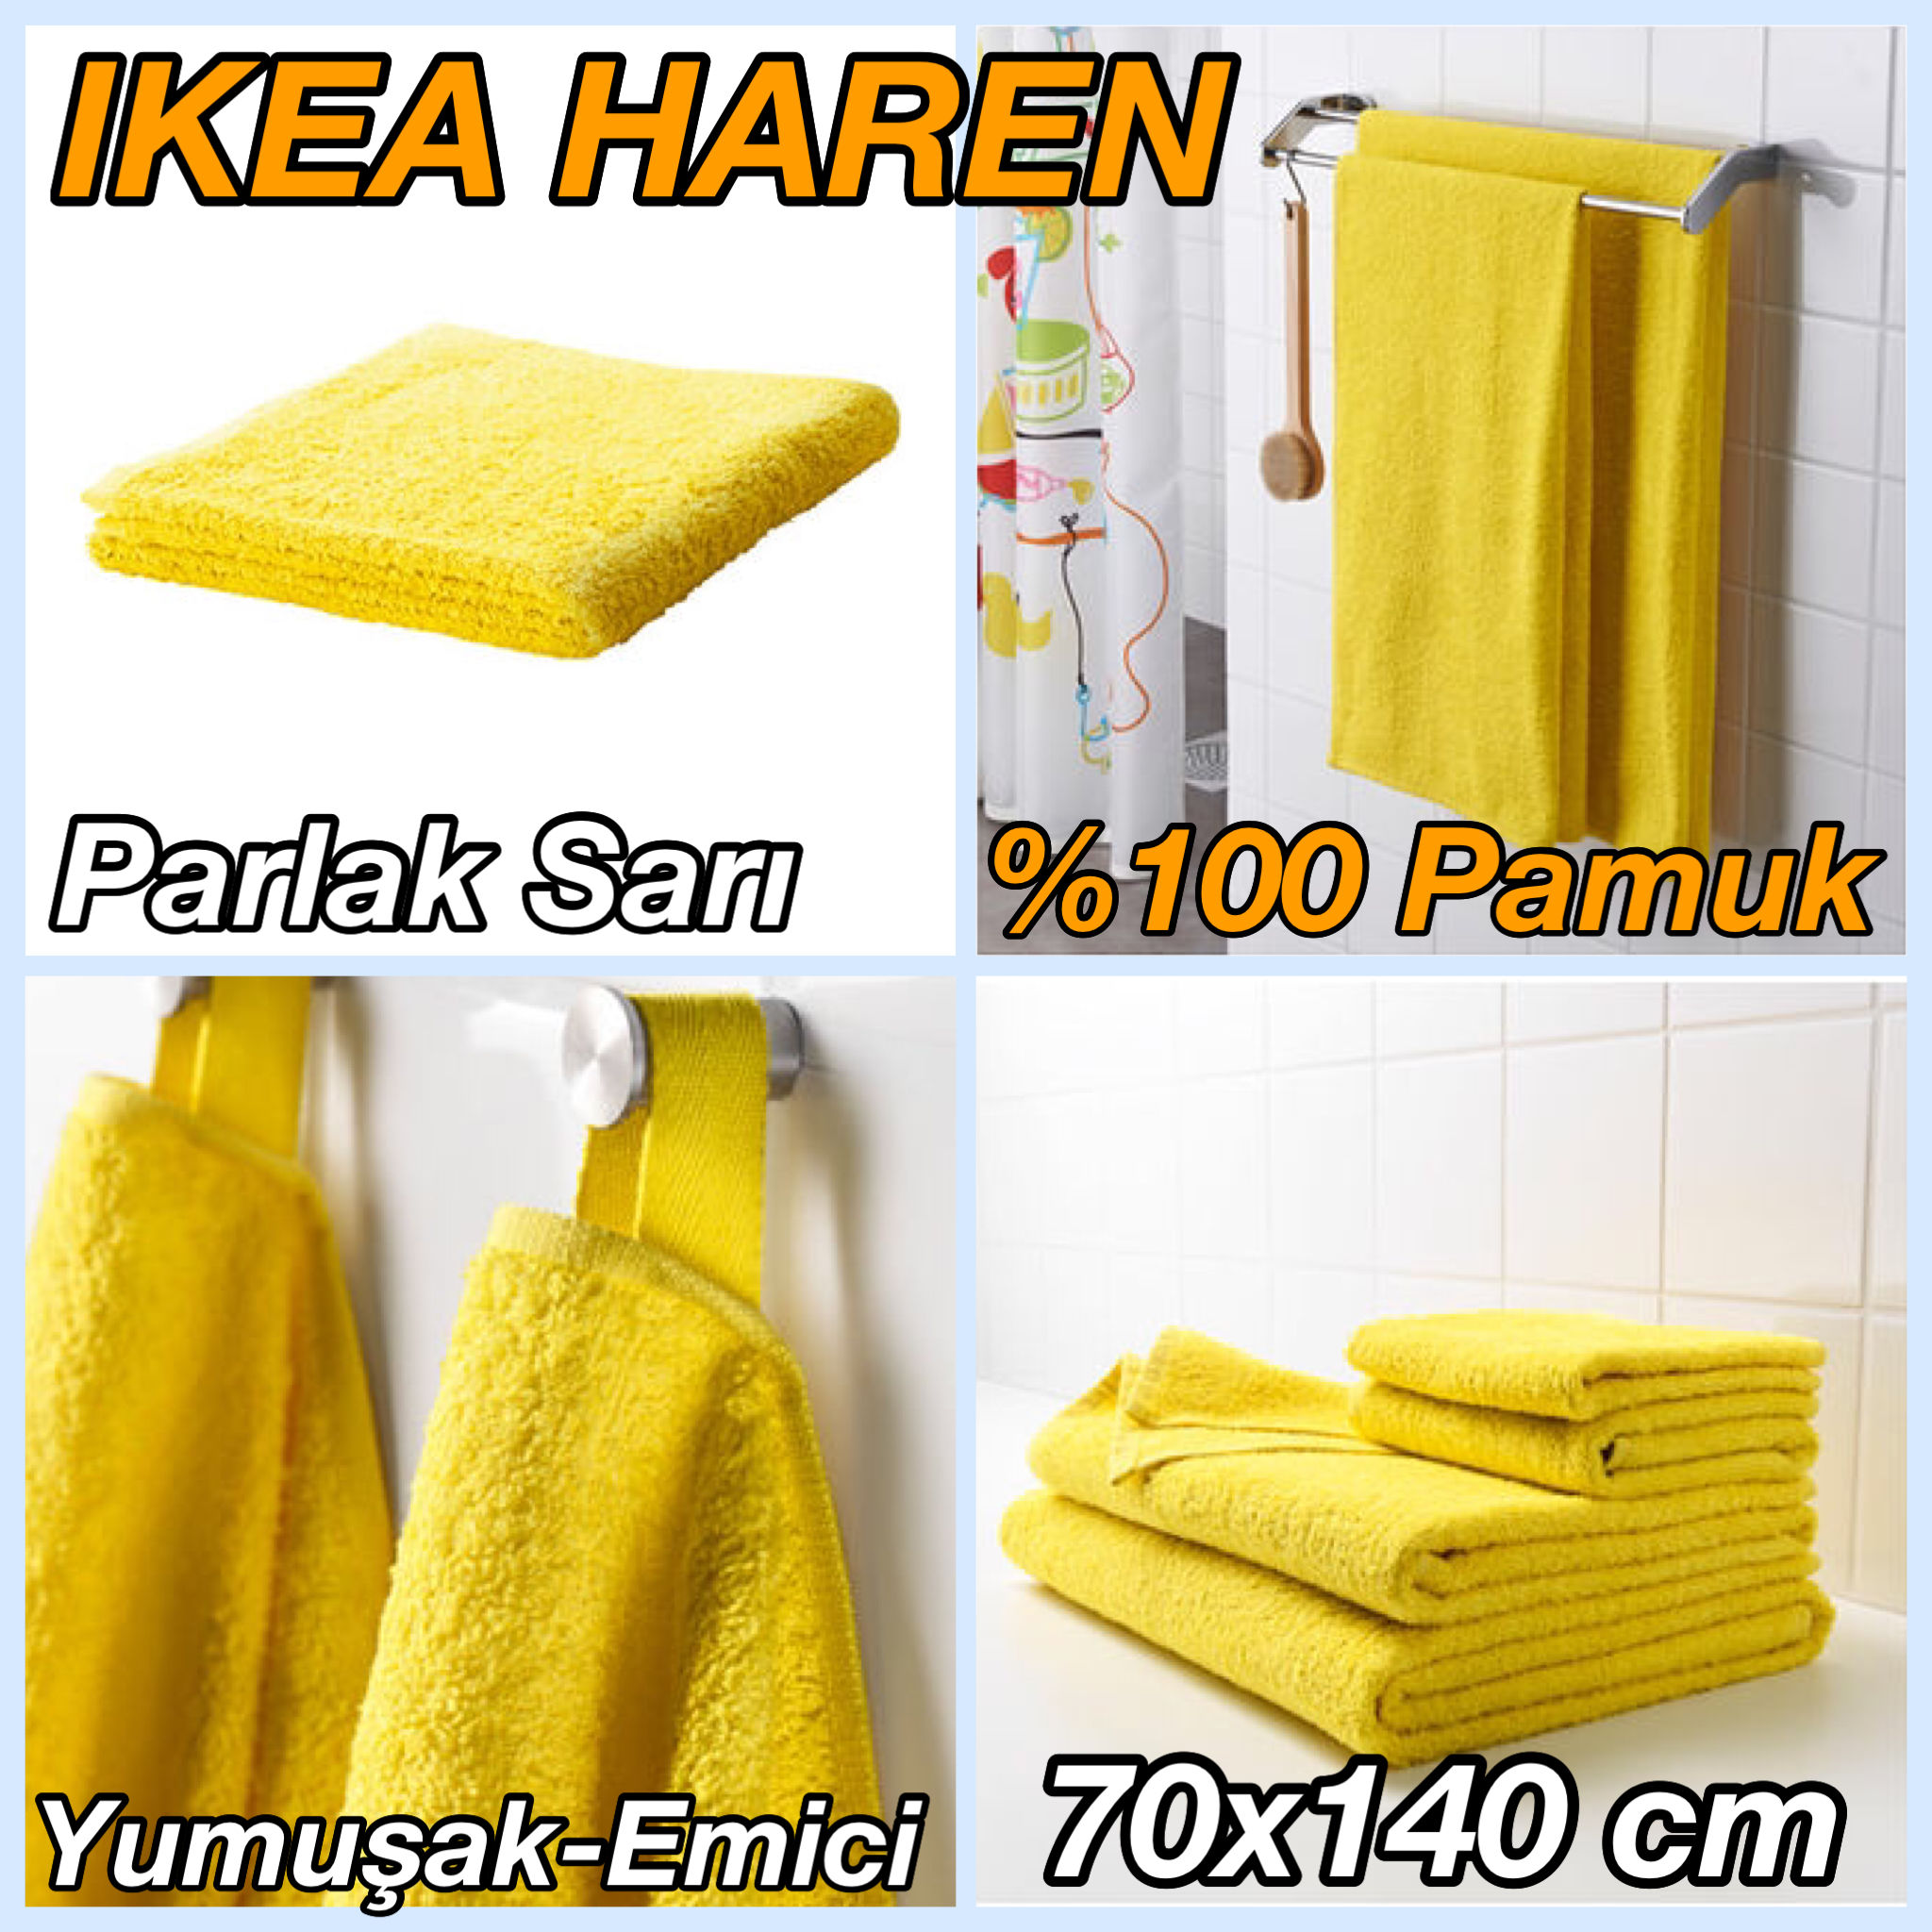 ikea haren 70x140 cm parlak sari plaj banyo havlusu. Black Bedroom Furniture Sets. Home Design Ideas